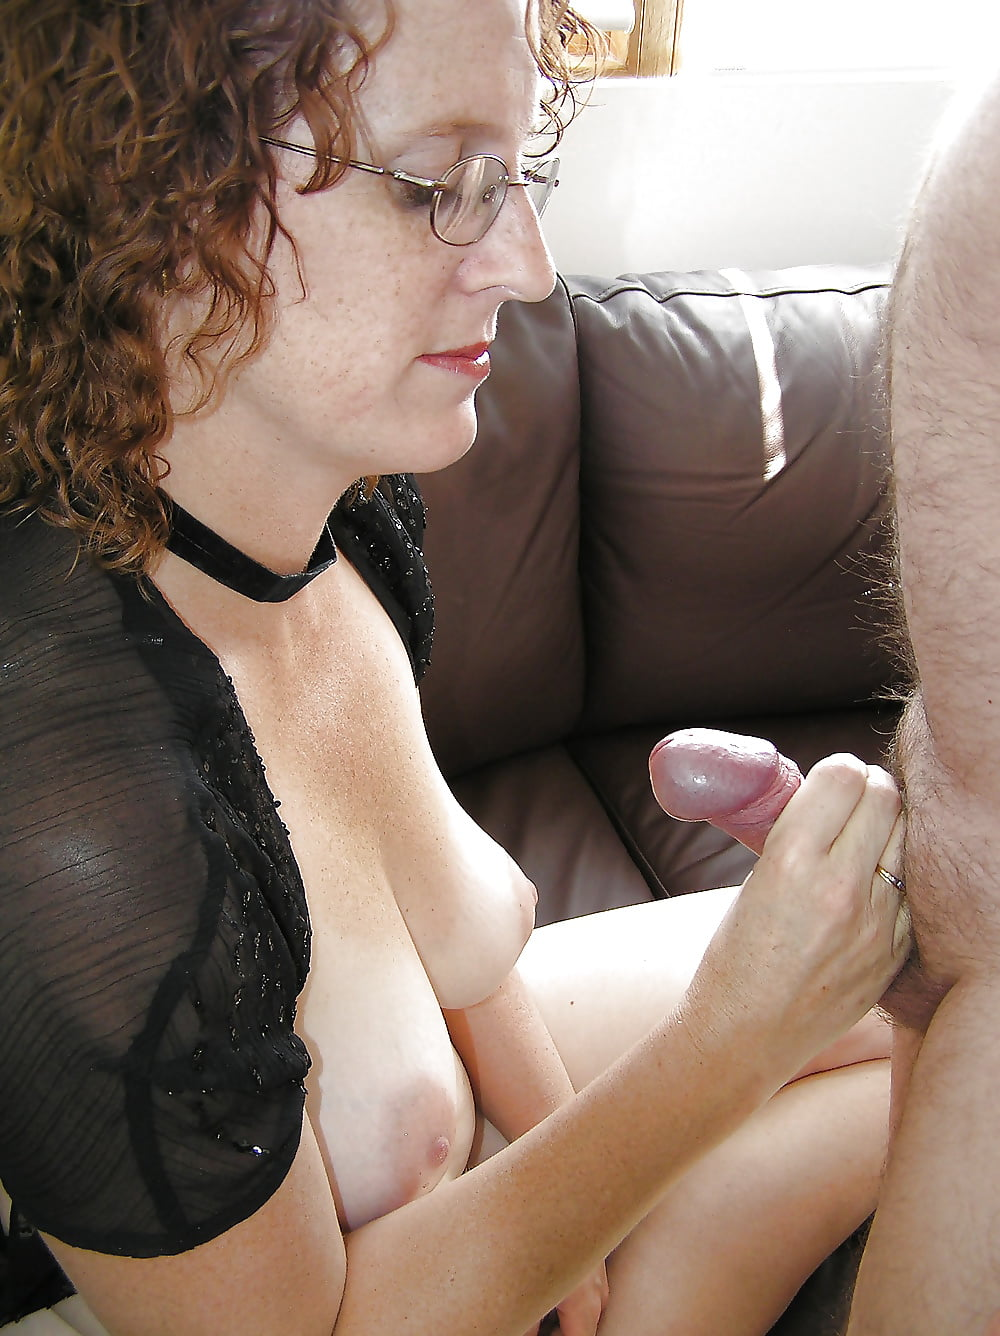 Mom Handjob Pinkworld Pics